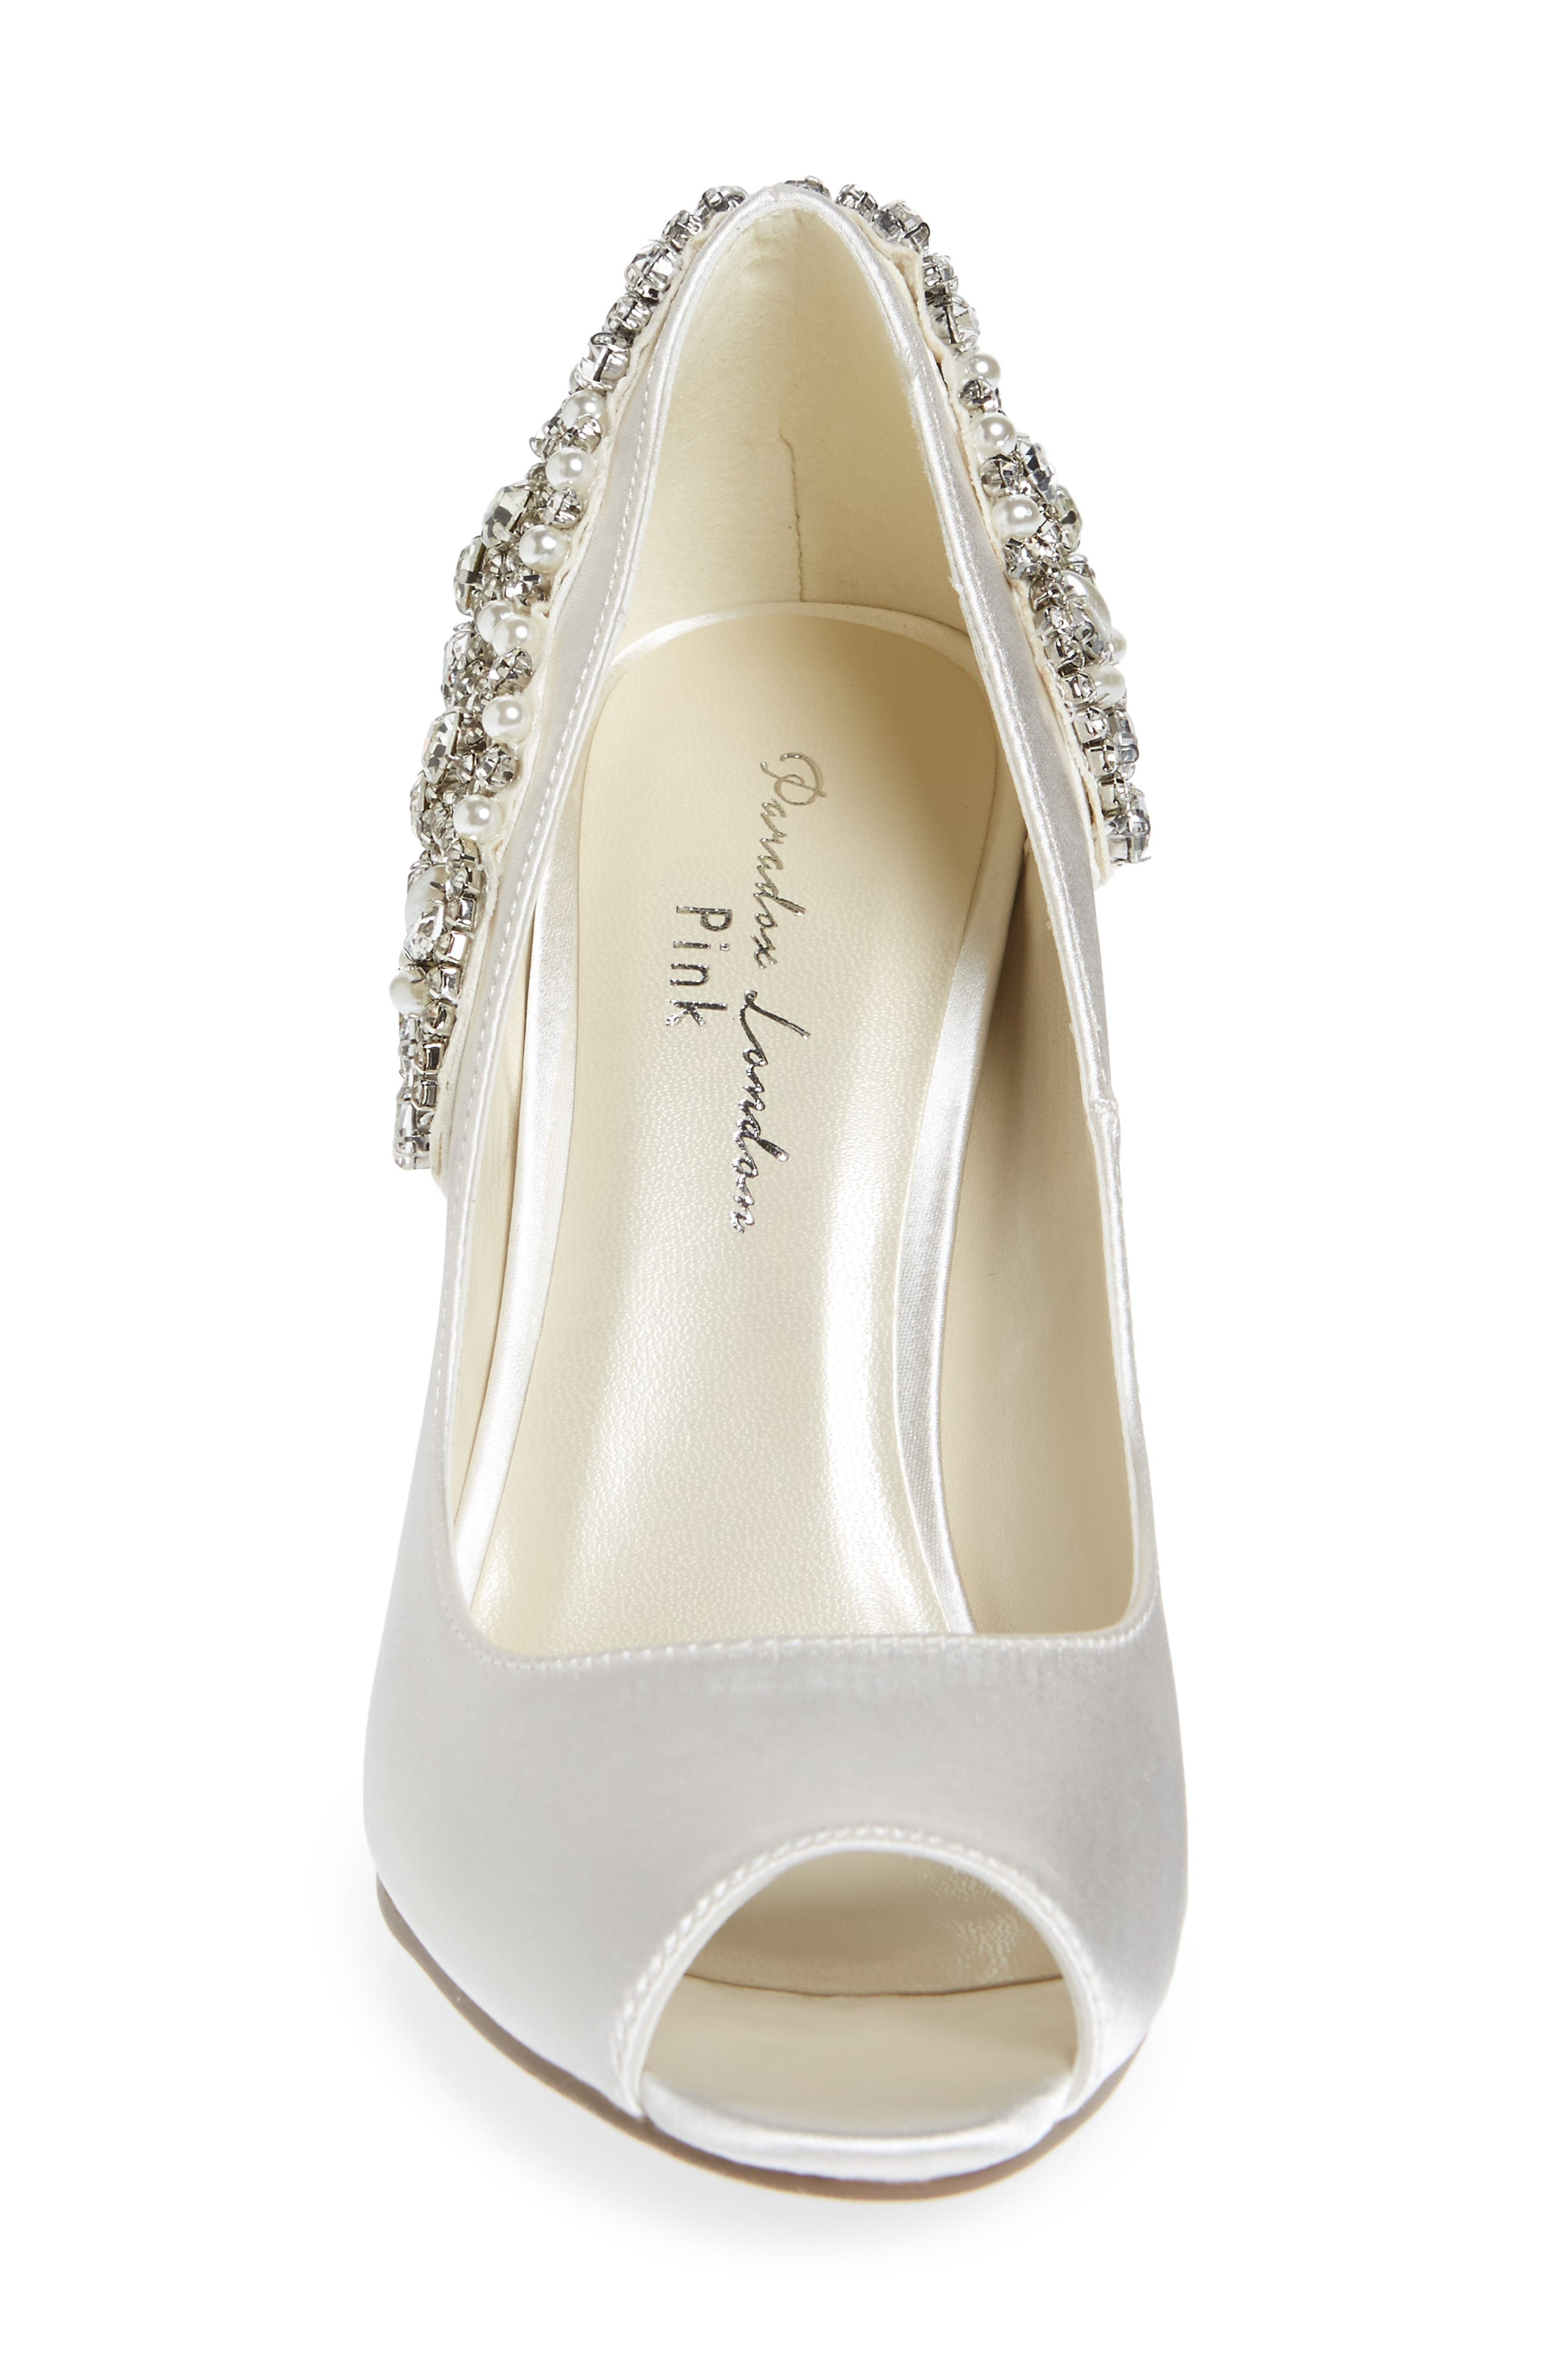 Cynthia Embellished Pump,                             Alternate thumbnail 4, color,                             IVORY SATIN